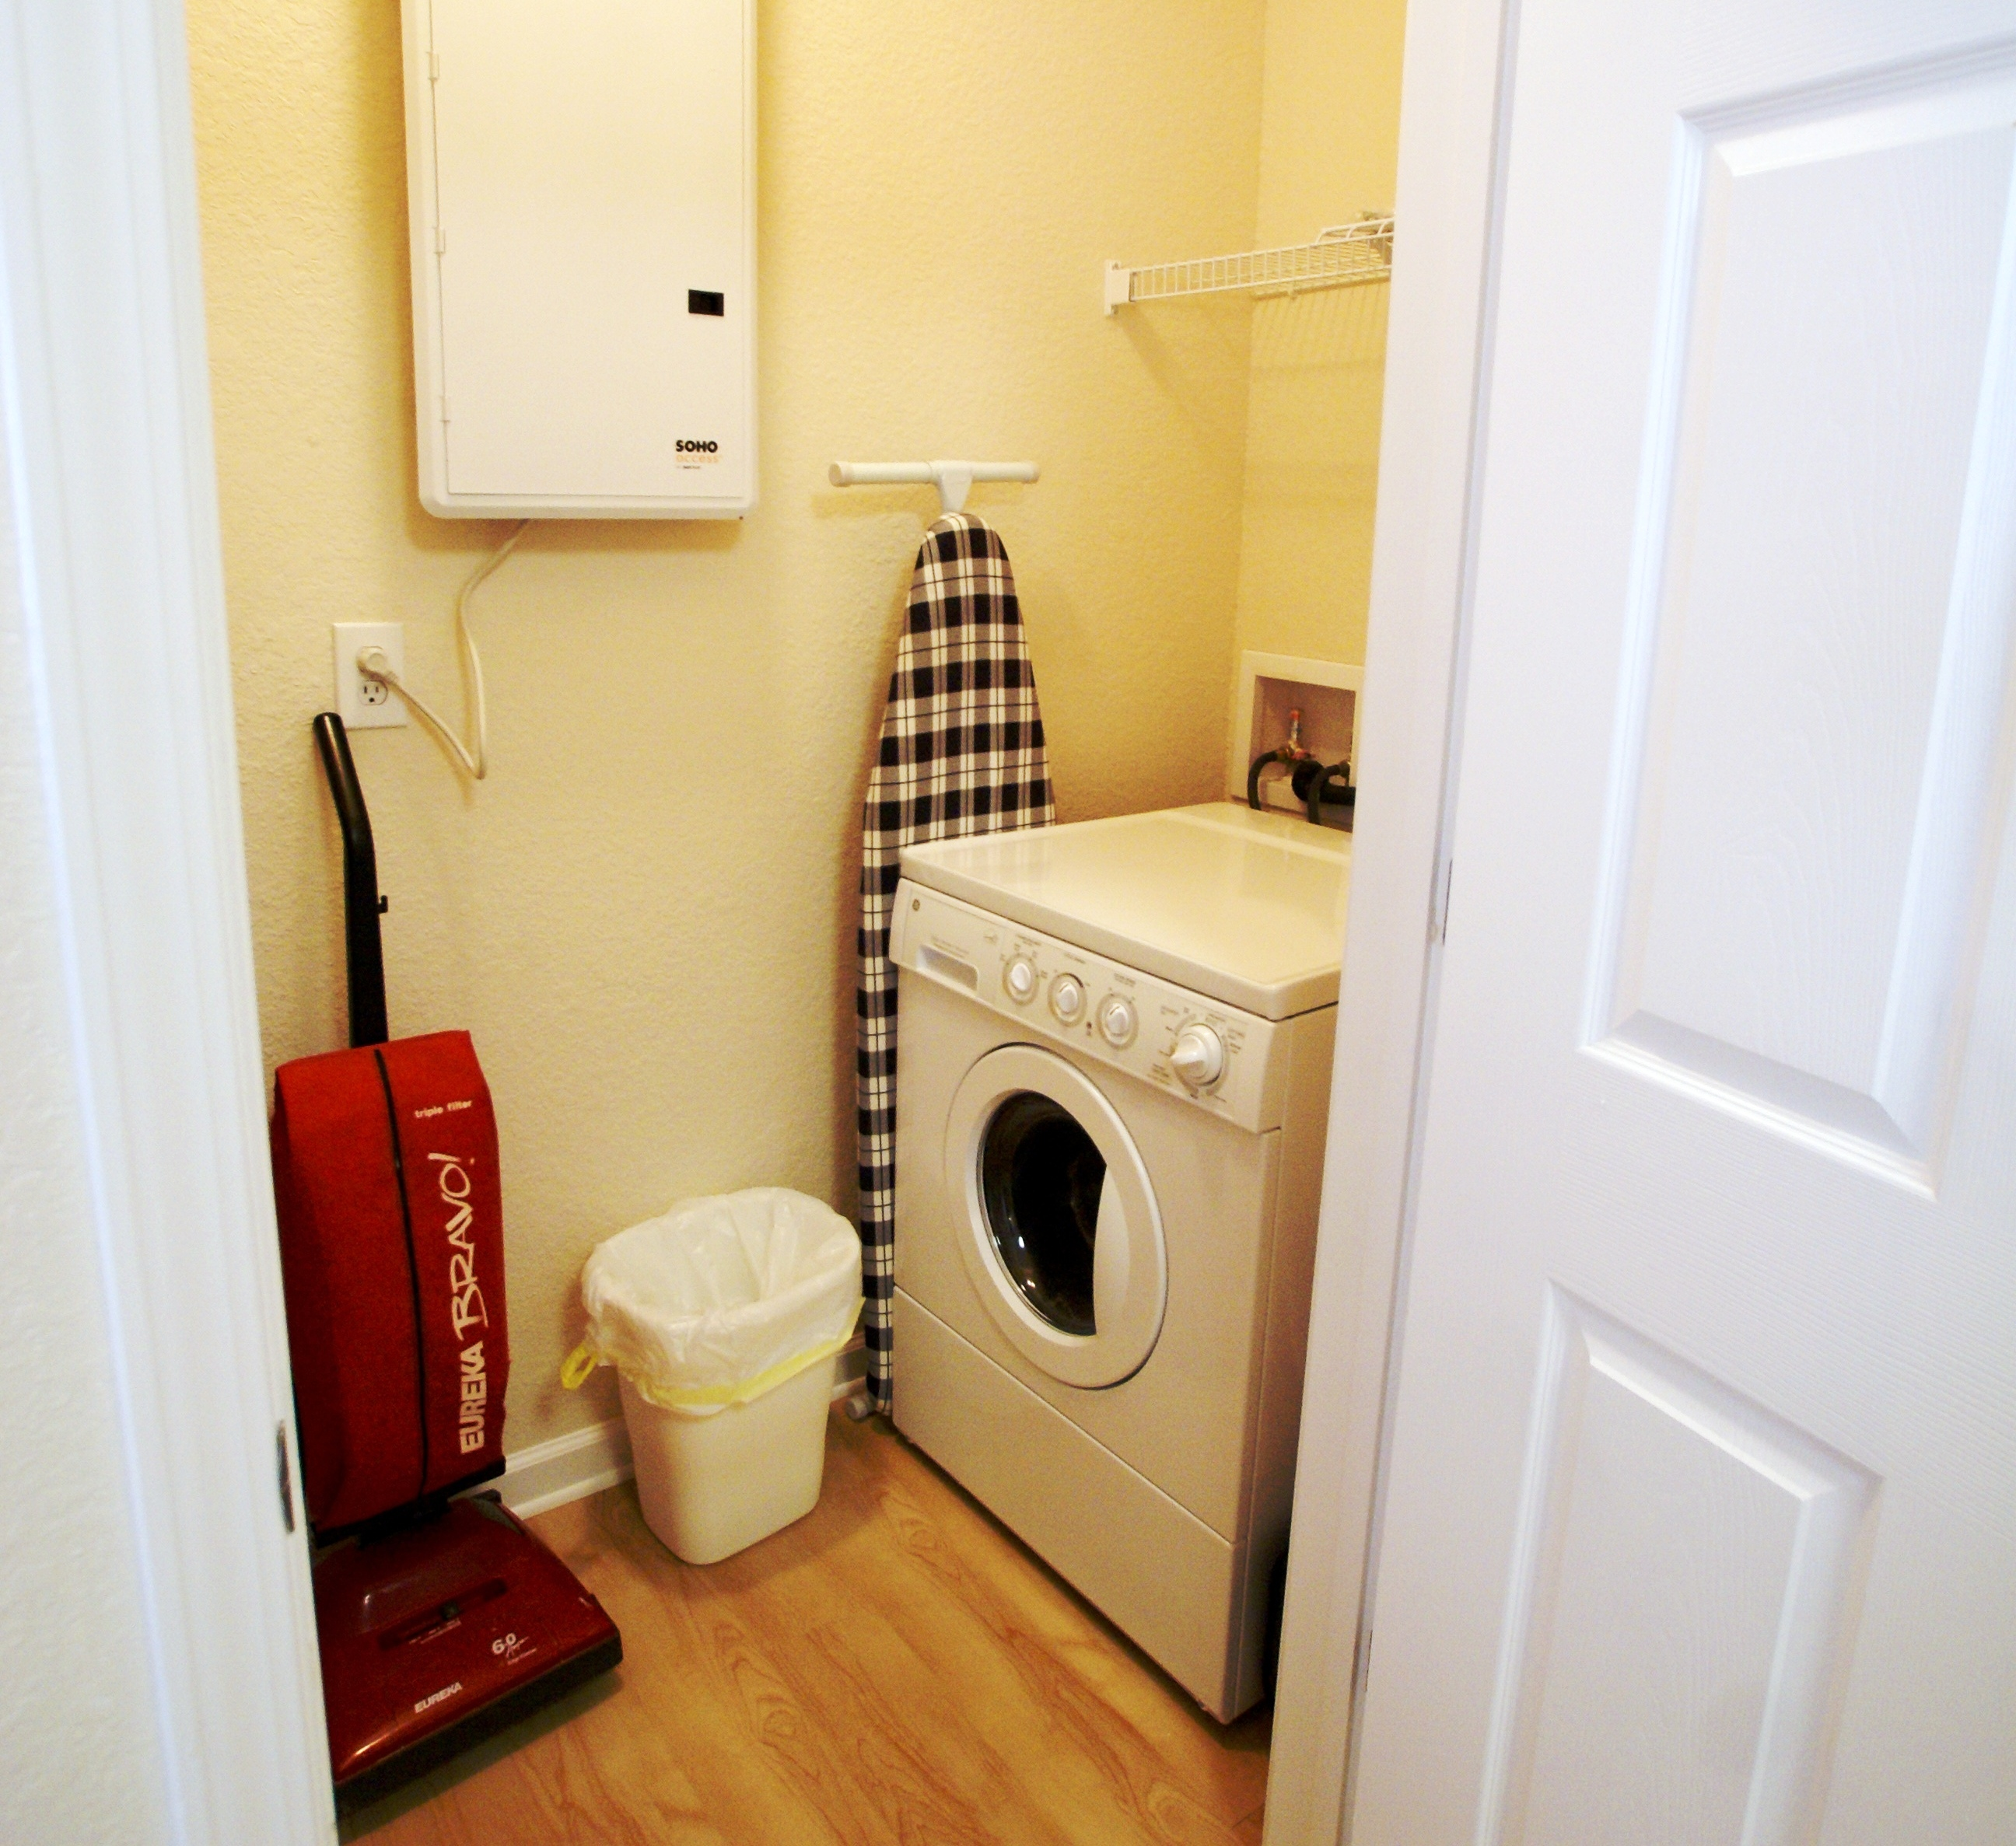 washer dryer iron ironing board vaccum laundry room shelving laundry soap trash can wood floors